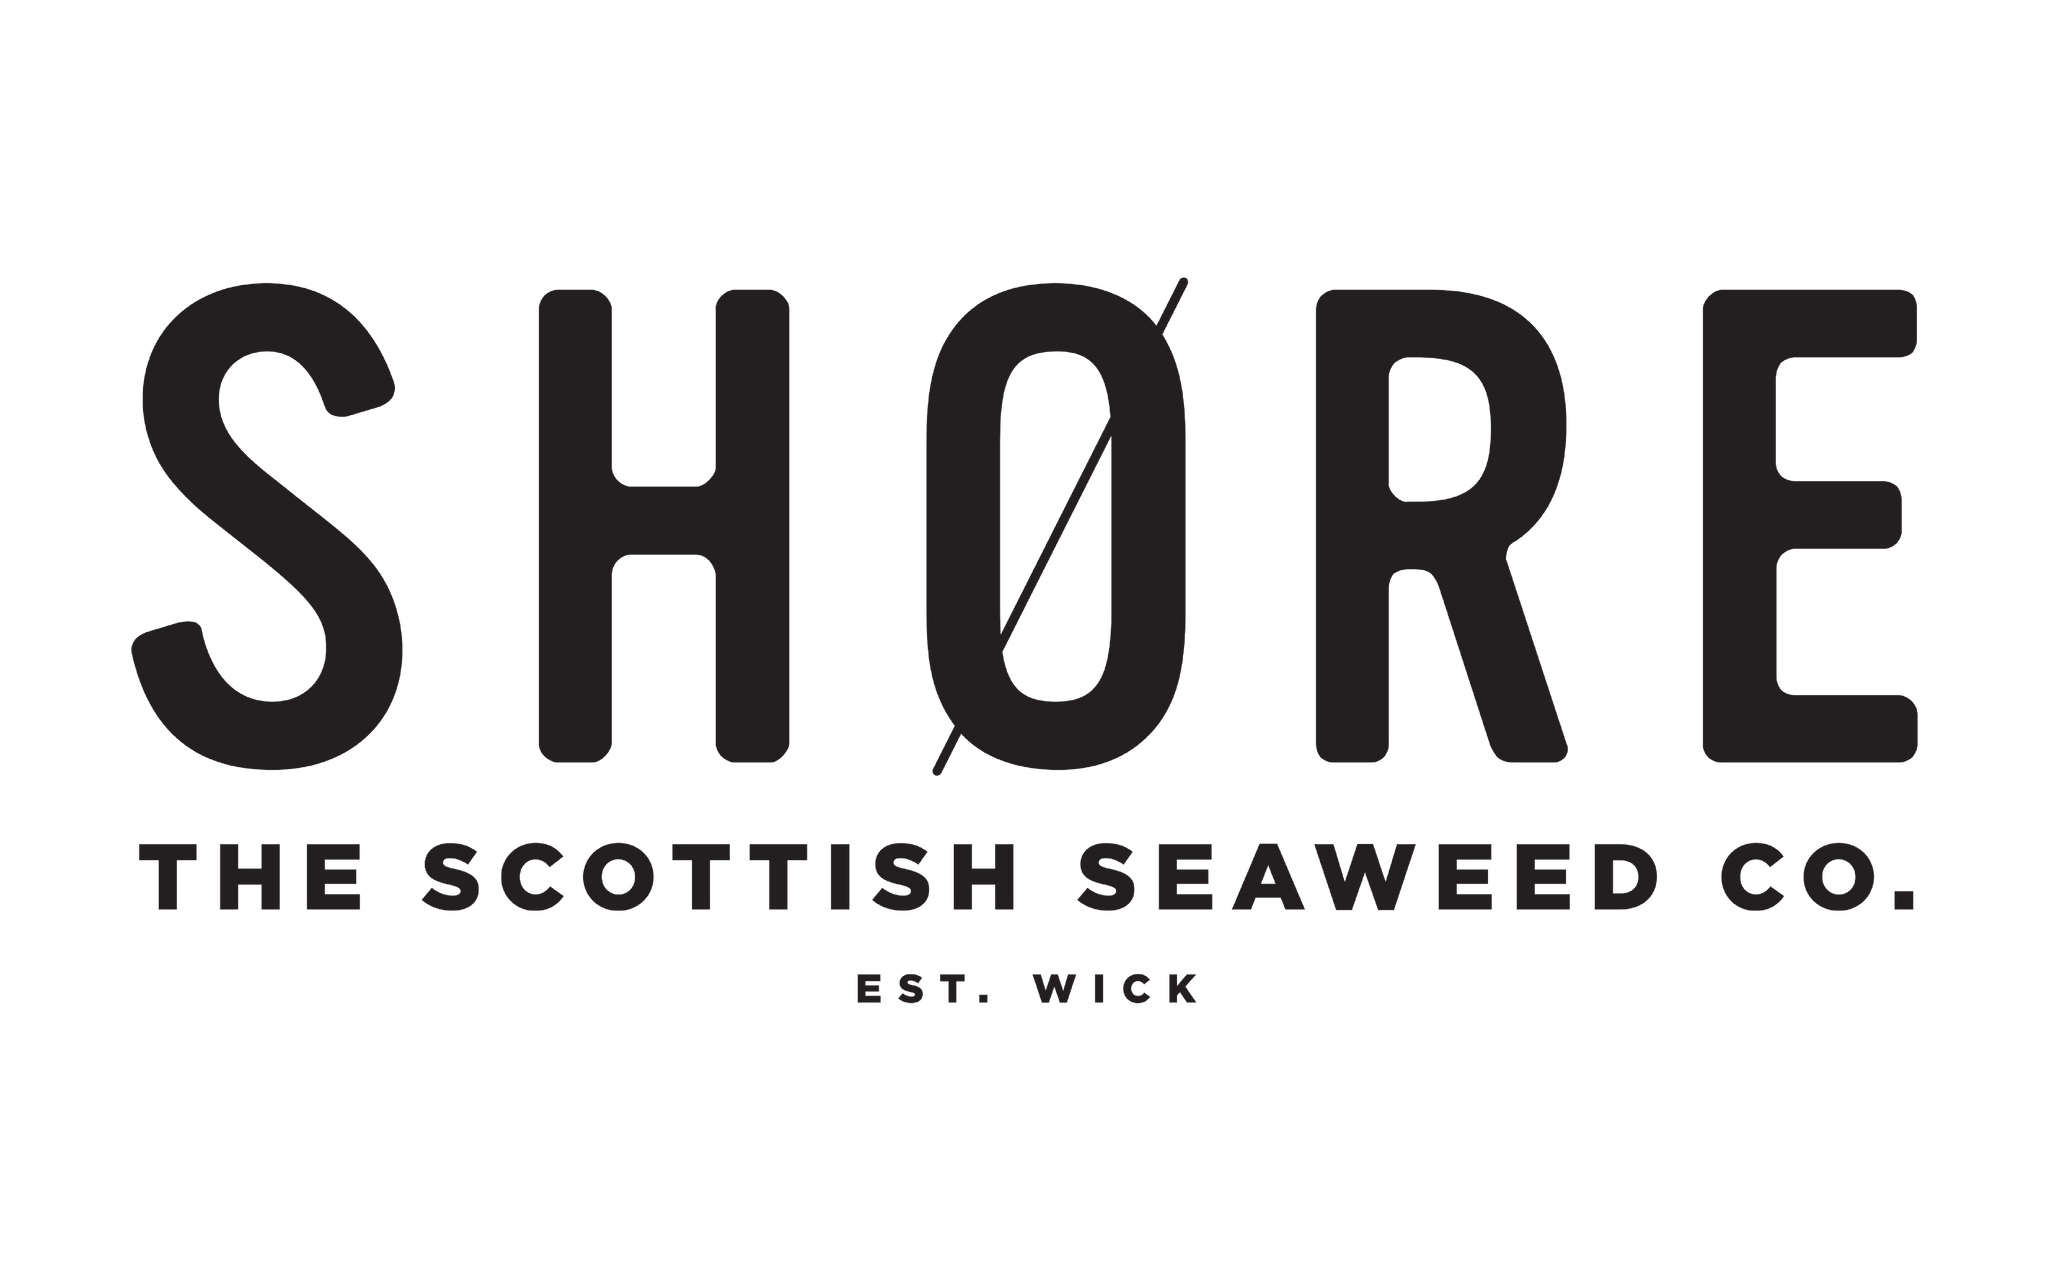 Shore the Scottish Seaweed Co.